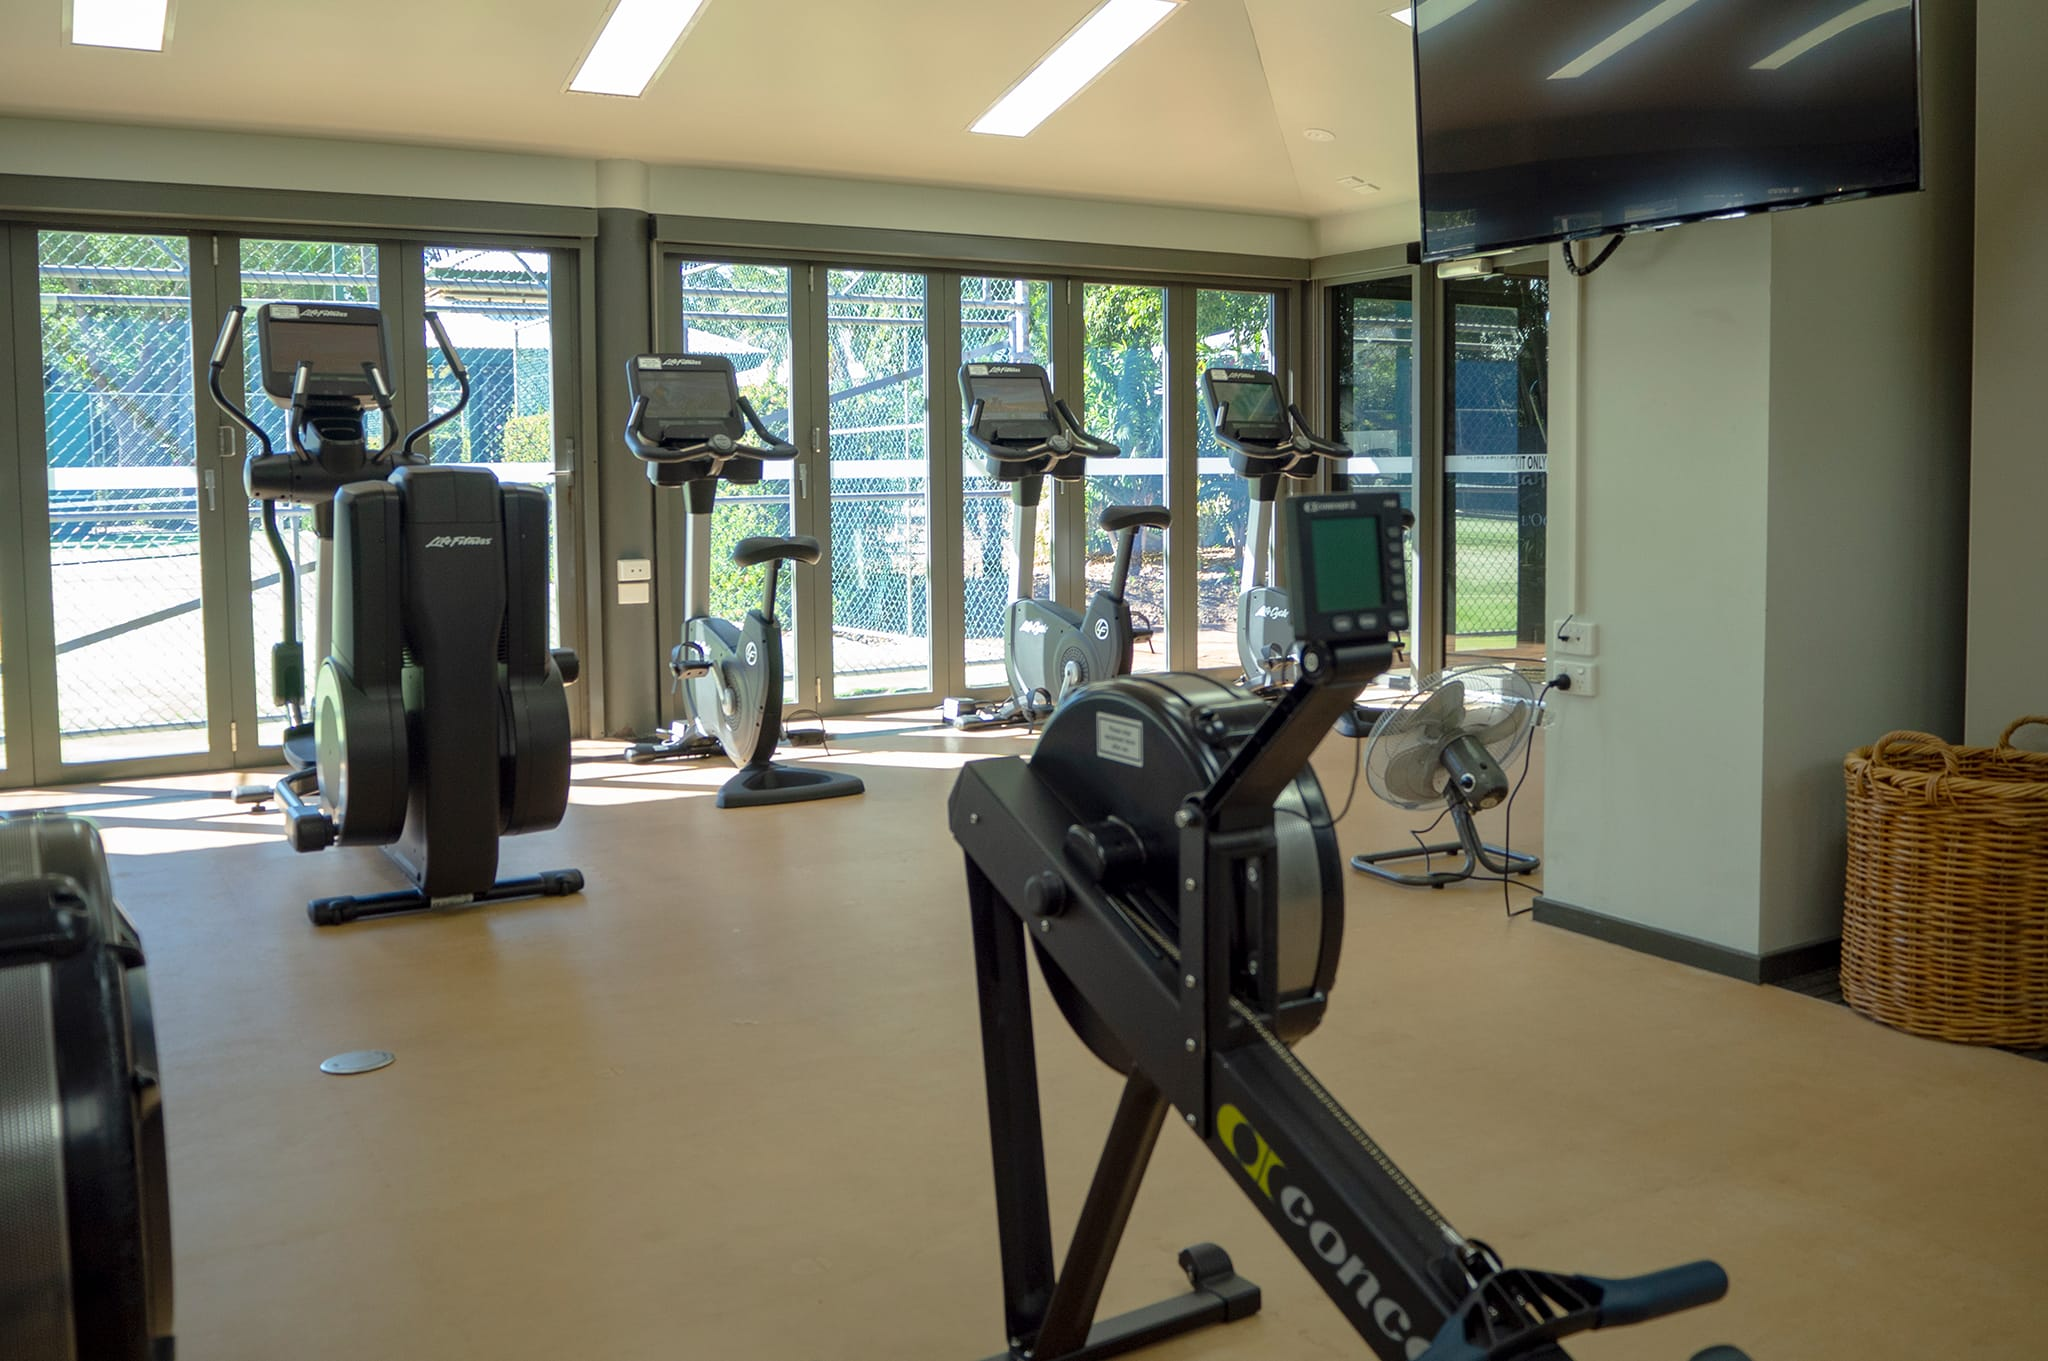 Cable Beach Club gym